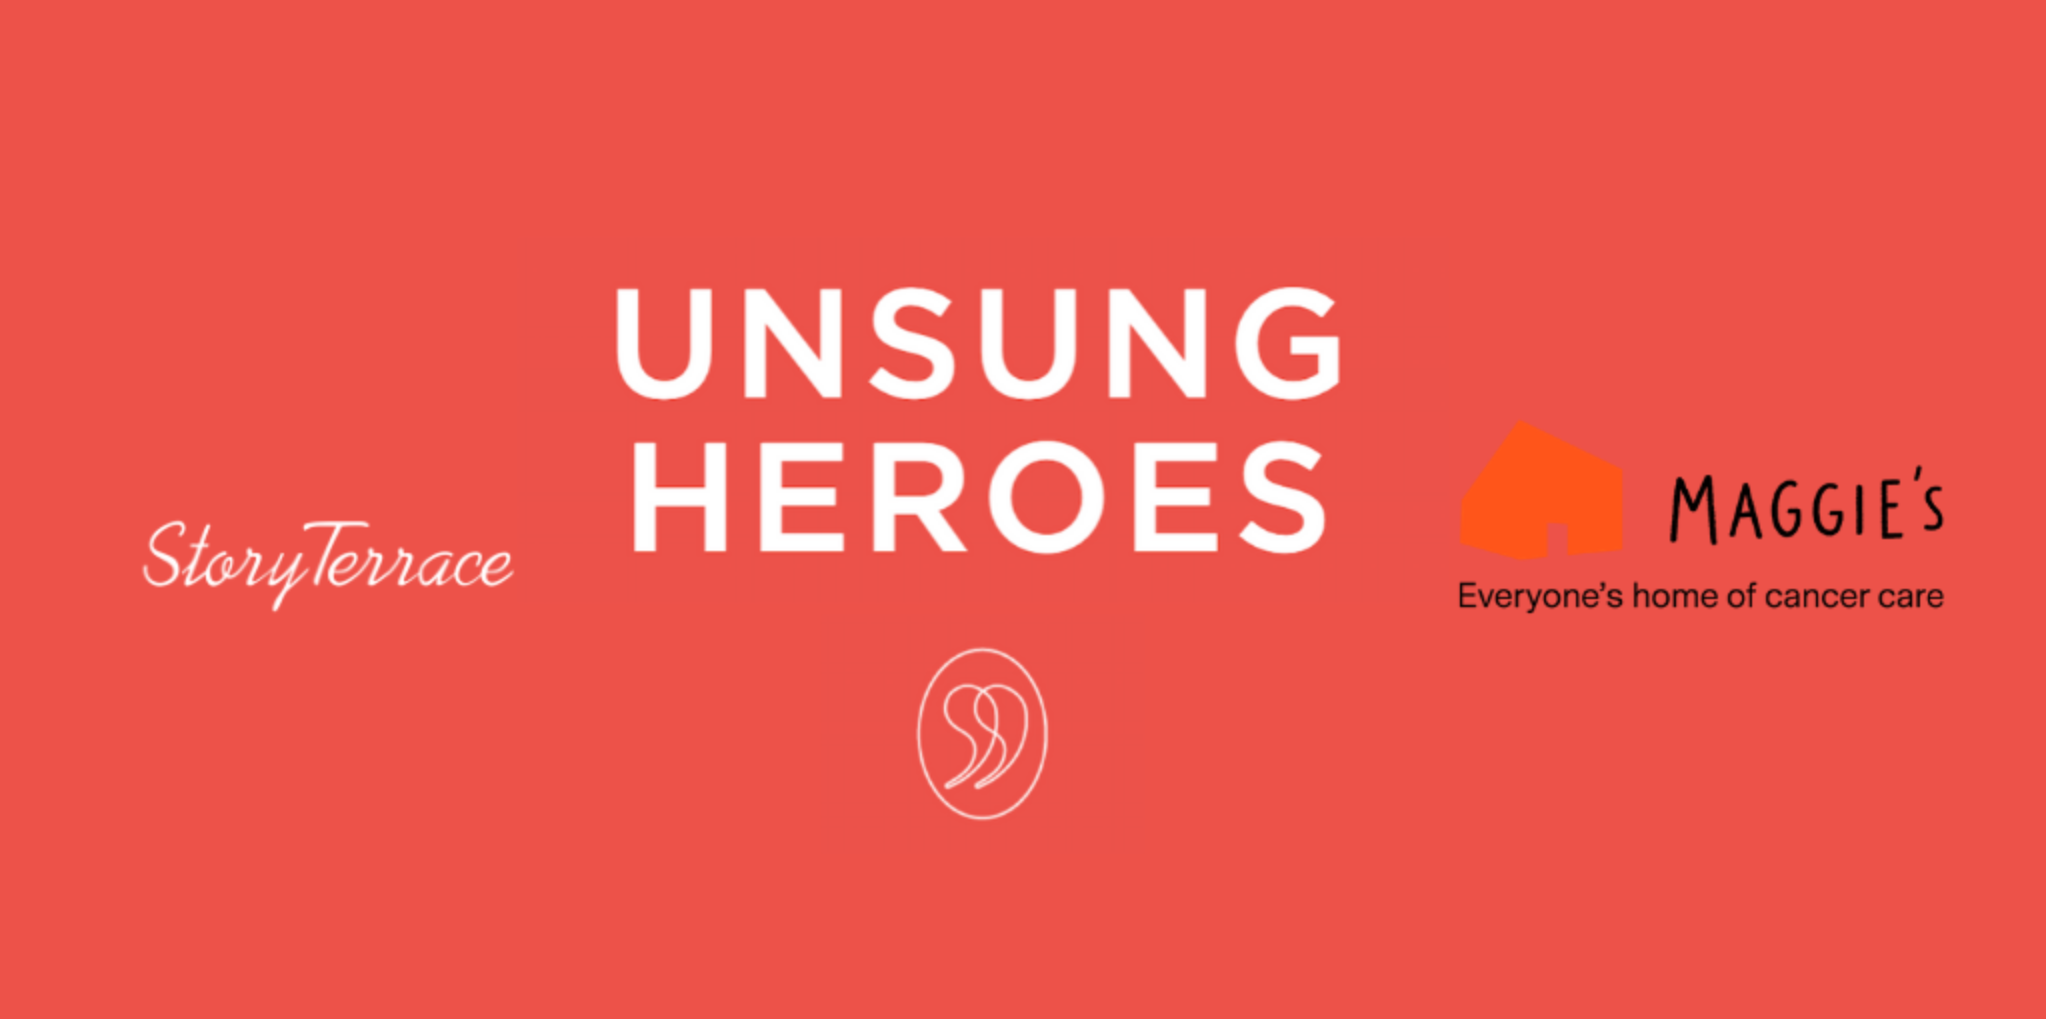 Press Release: StoryTerrace Launches Unsung Heroes Maggie's partnership